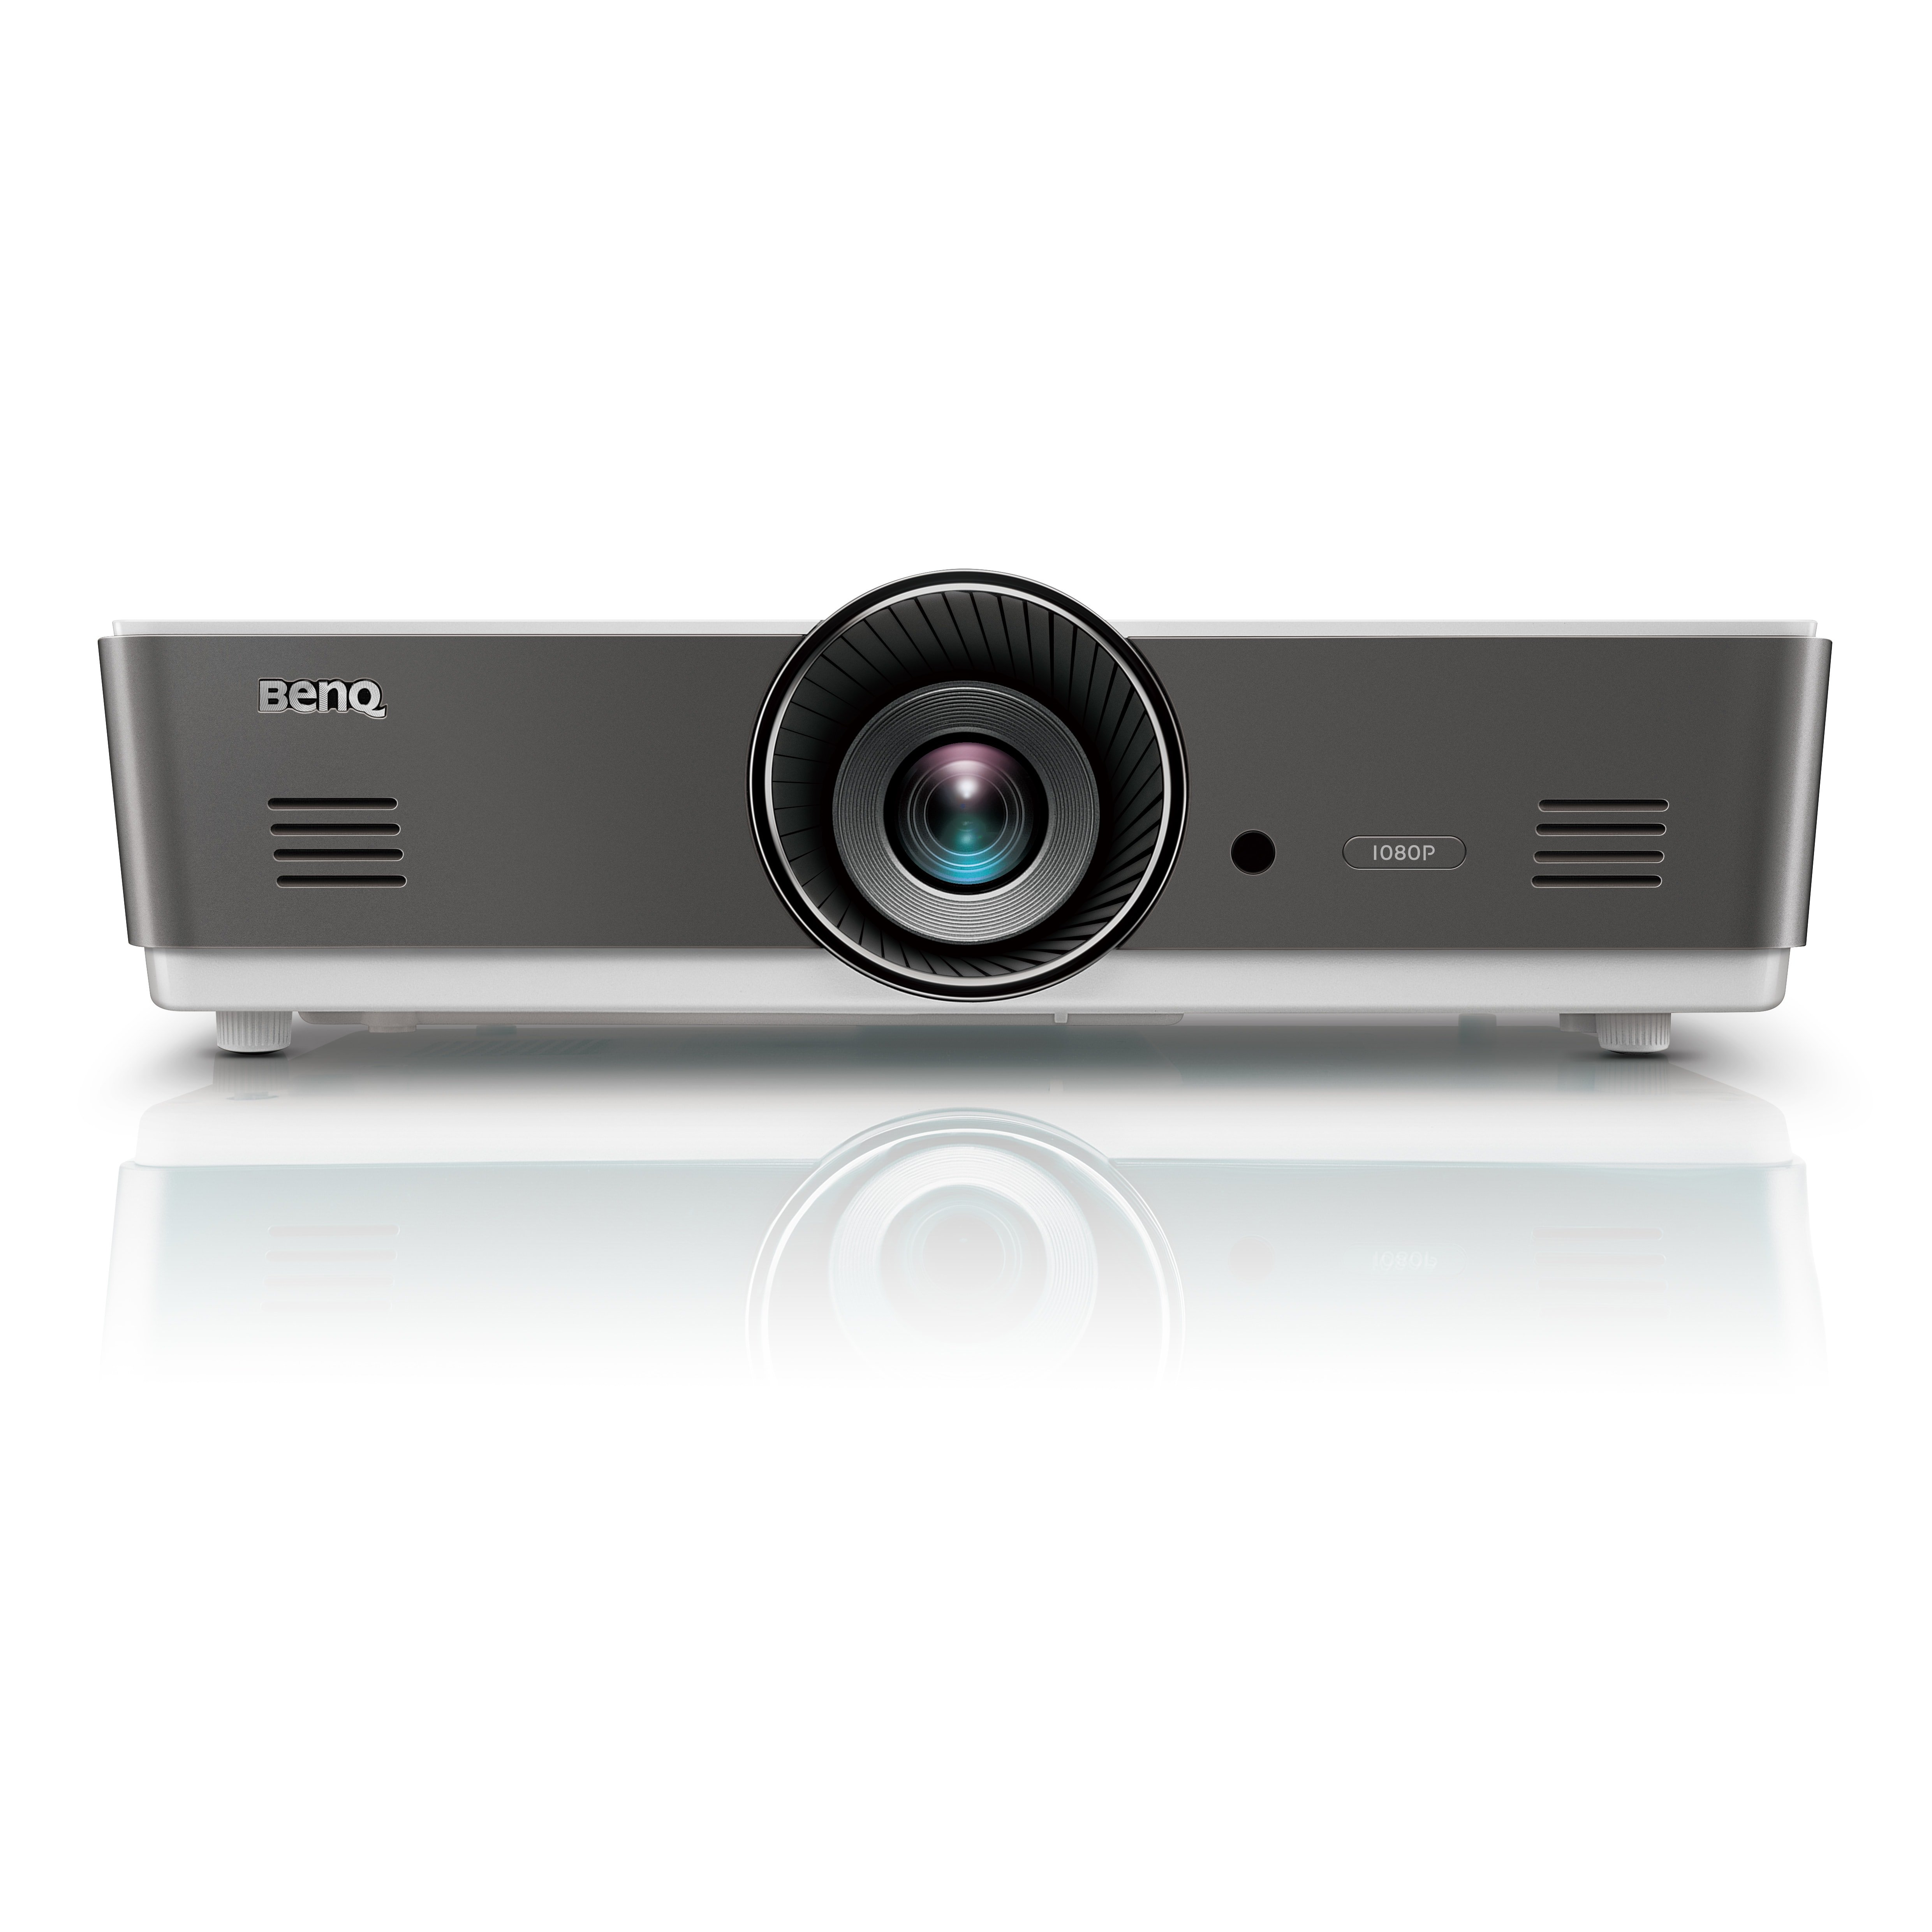 BenQ MH760 - 5000 Lumens 1920 x 1080 (Full HD) Resolution BenQ Projector